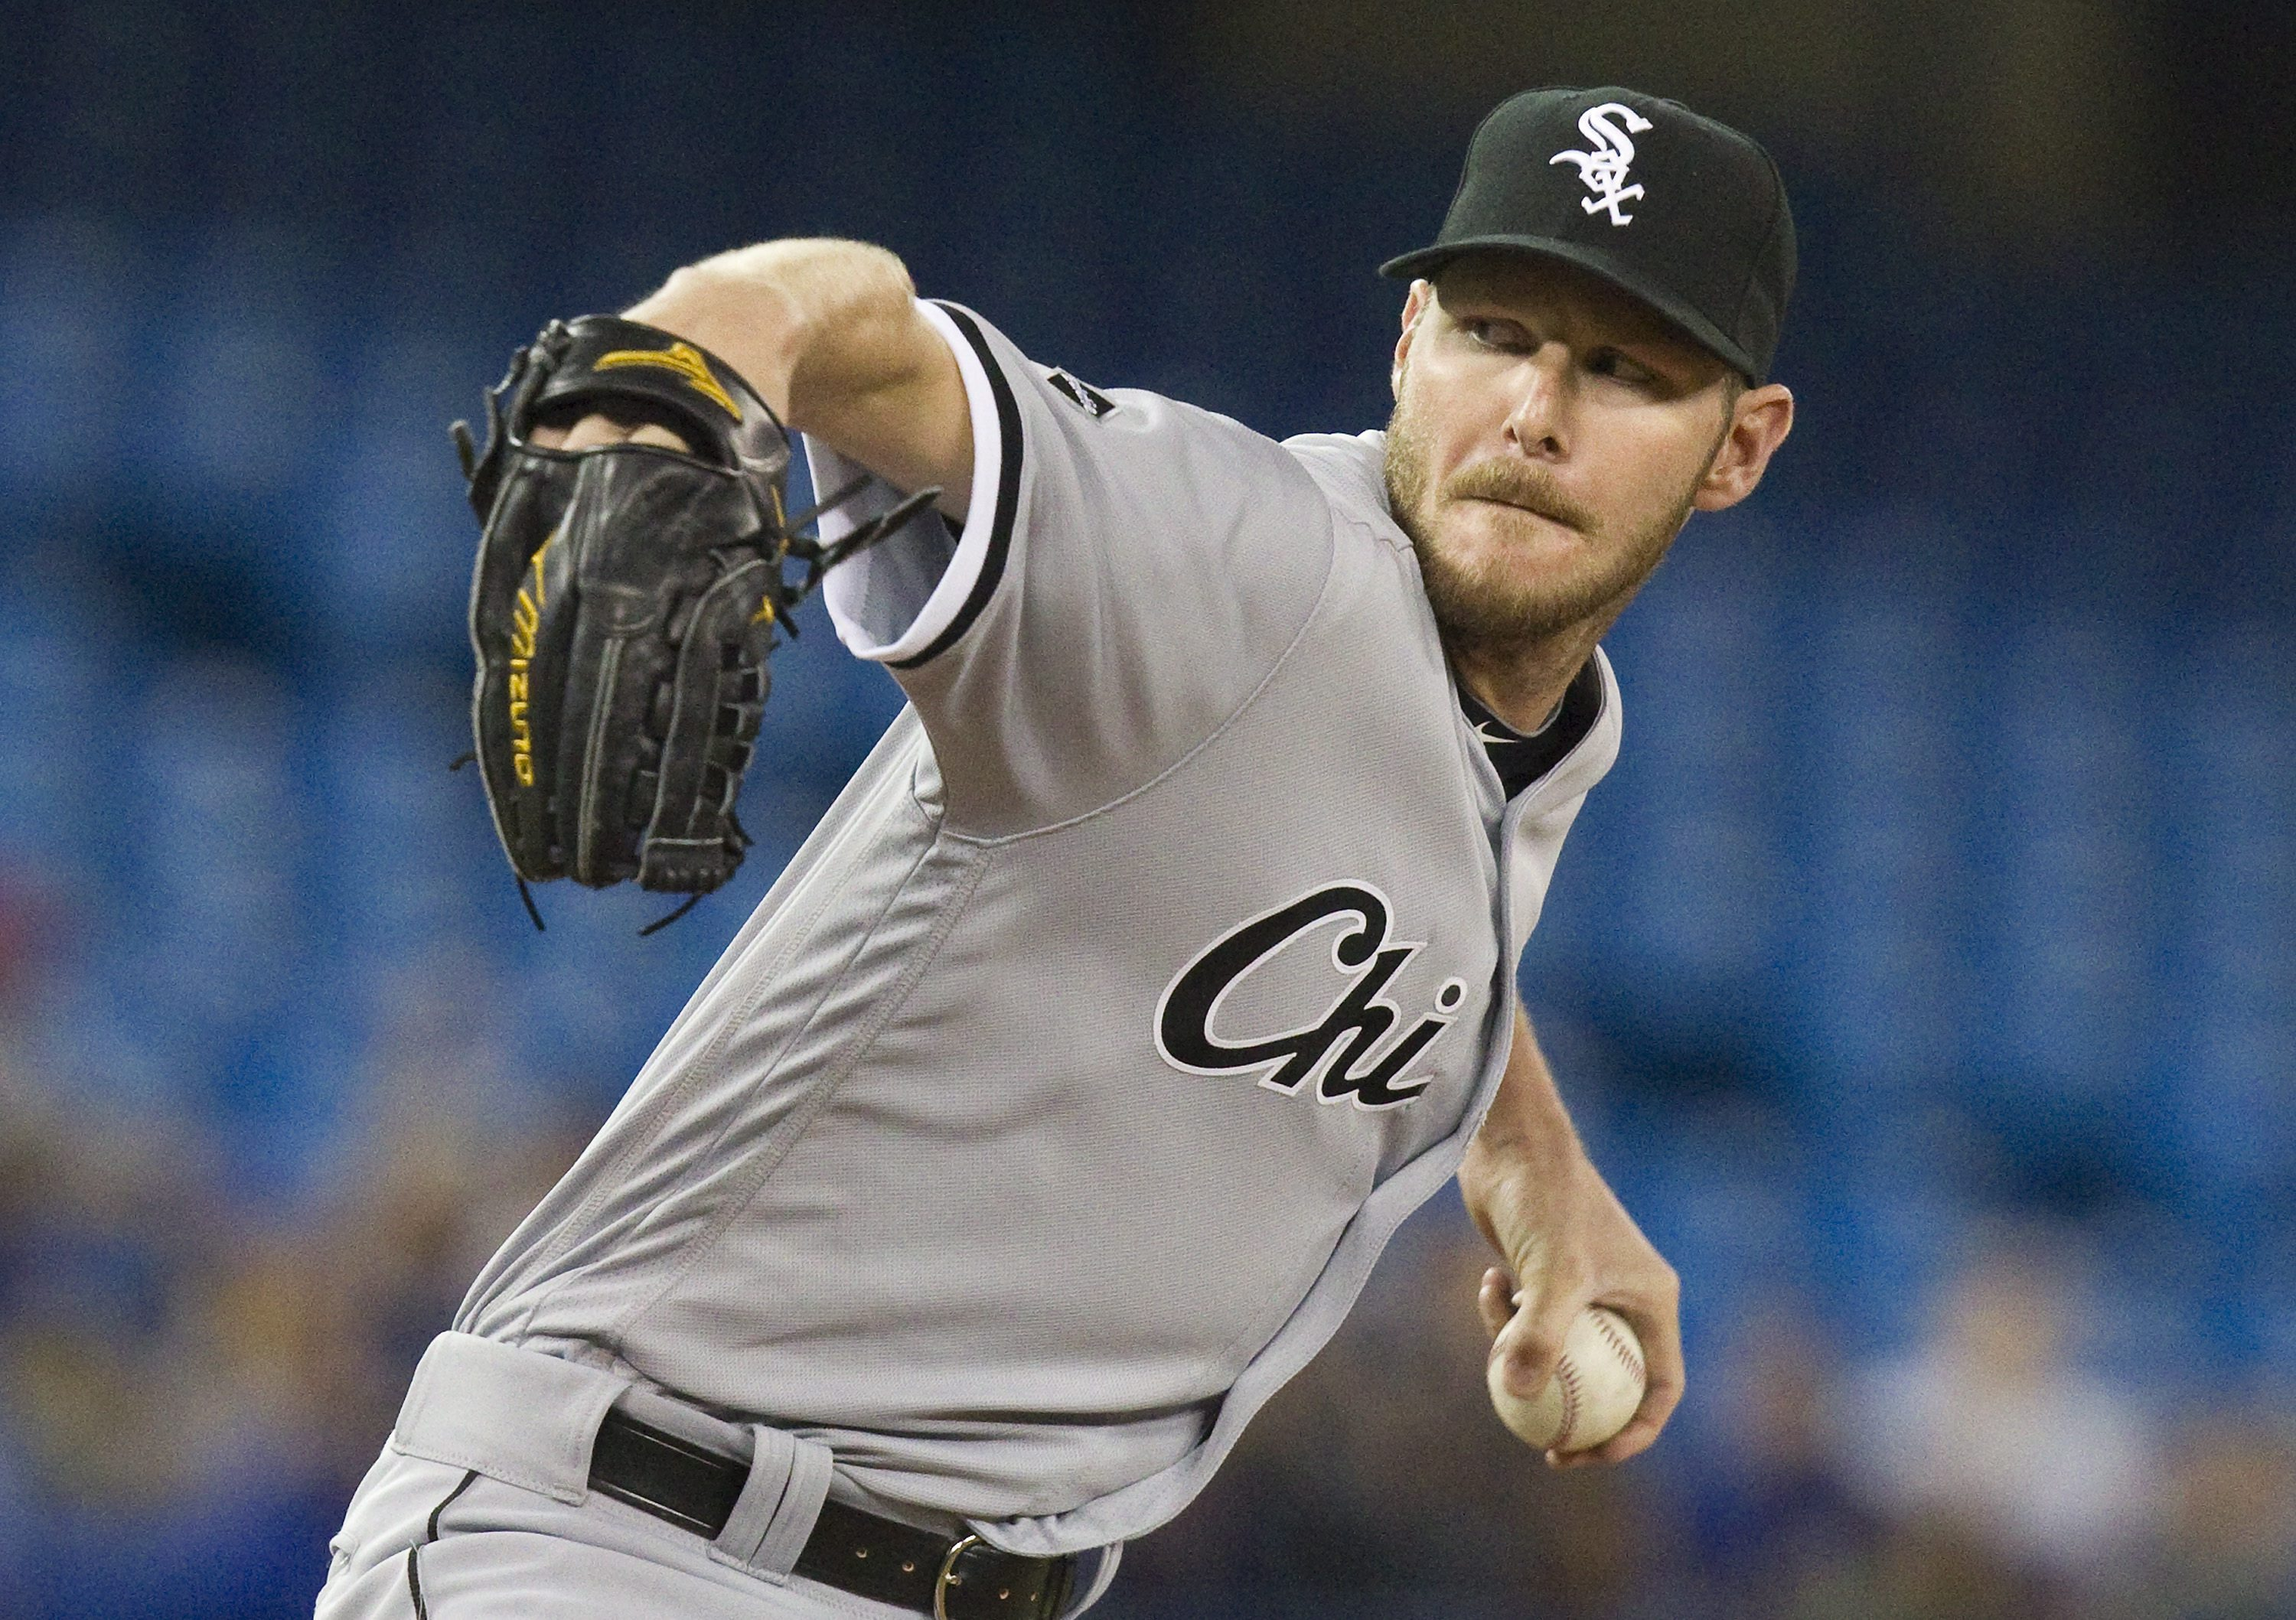 Chicago White Sox starting pitcher Chris Sale throws against the Toronto Blue Jays during the first inning of a baseball game Tuesday, April 26, 2016, in Toronto. (Fred Thornhill/The Canadian Press via AP)